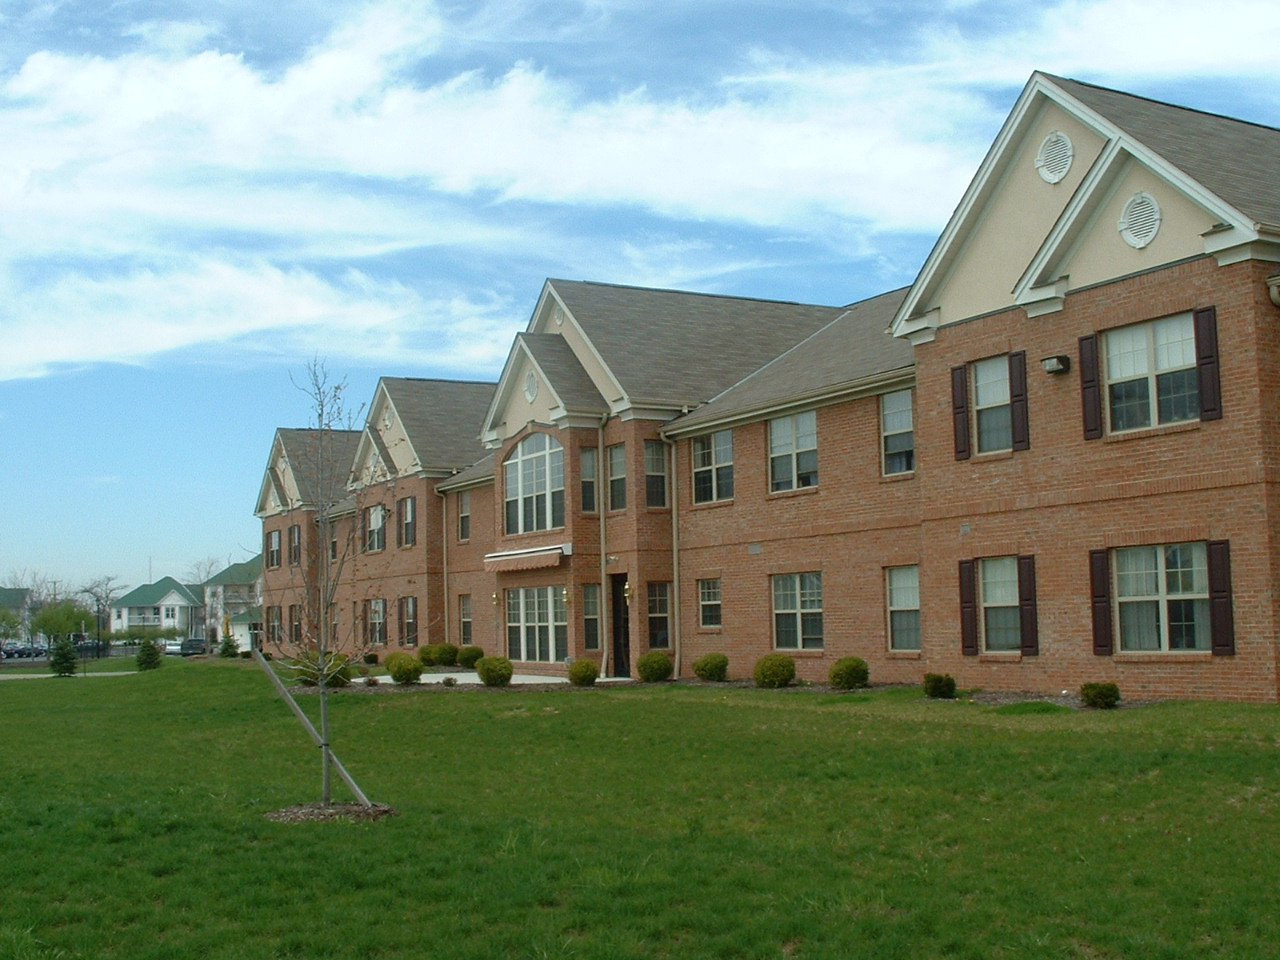 Grand HAvens Commons - TAx Credit / Affordable Housing  Located in Reynoldsburg, Ohio, Grand Haven is one of 8 HUD 202 buildings designed by JMAC.   CONSTRUCTION COST:  $4.2 million  LOCATION:  Reynoldsburg, OH  INCLUDES:  80 one and two-bedroom apartments